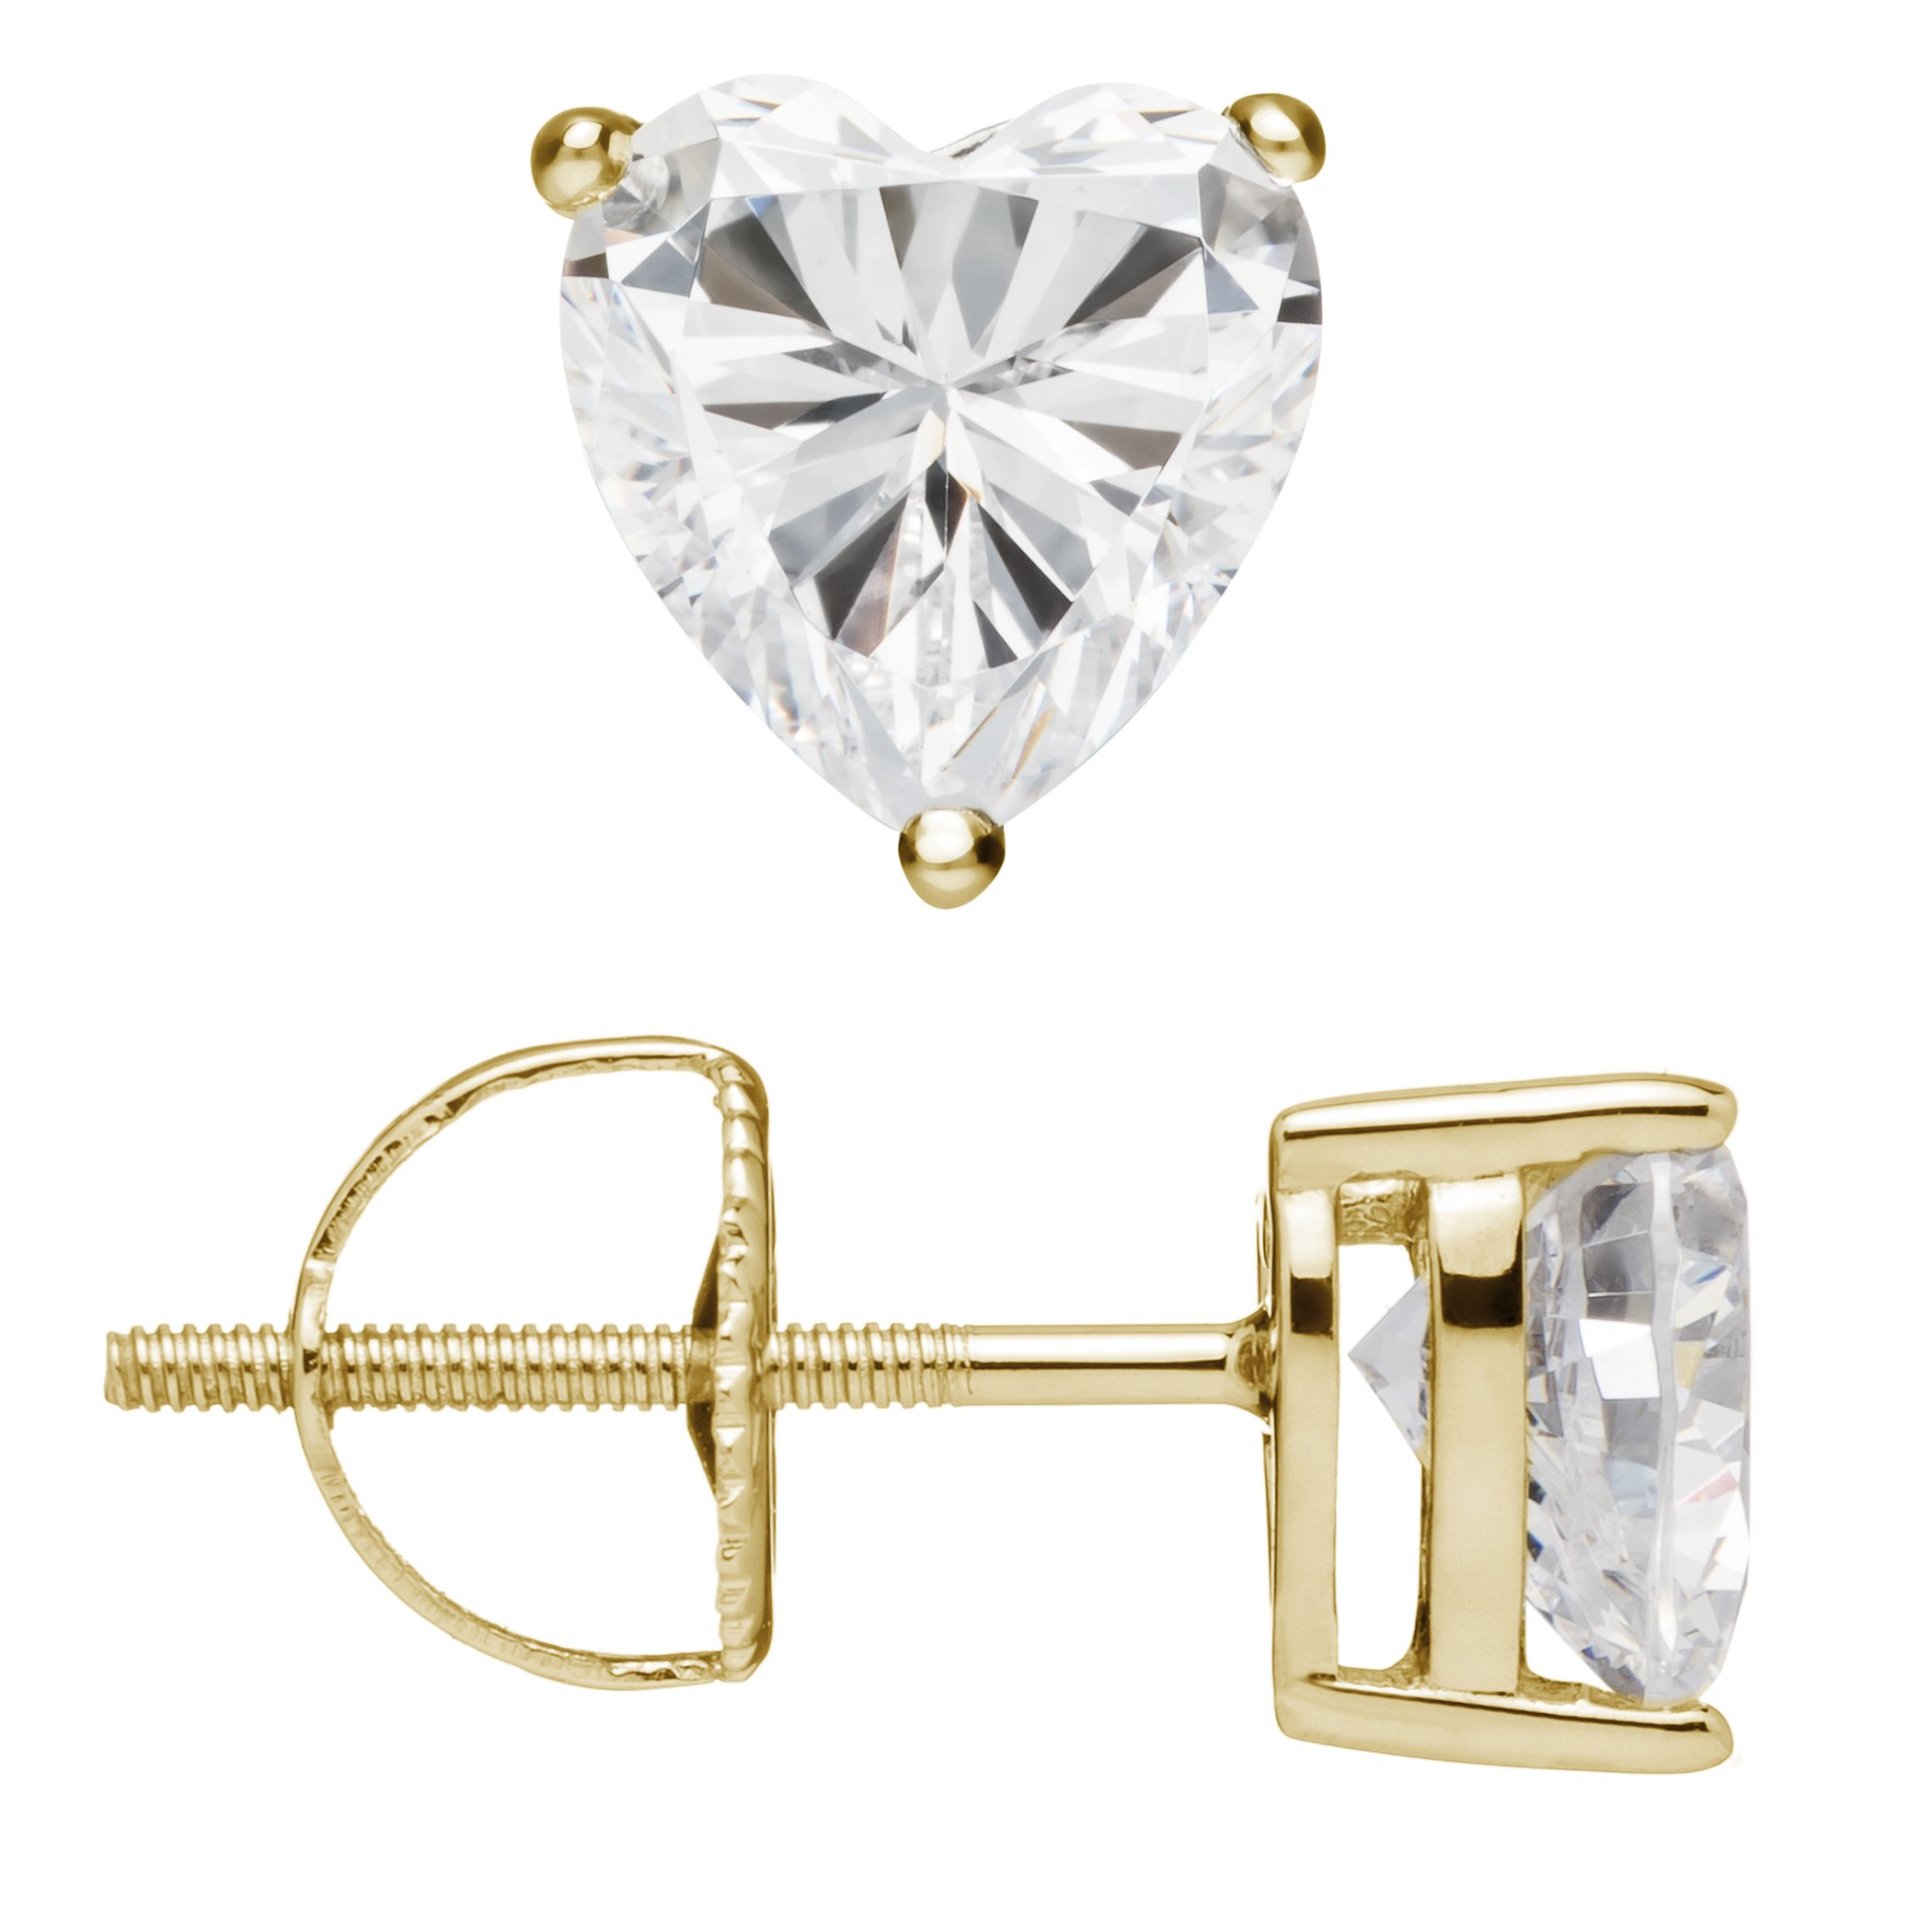 Everyday Elegance | 14K Solid Yellow Gold Stud Earrings | Heart Cut Cubic Zirconia | Screw Back Posts | 1.5 cttw | With Gift Box